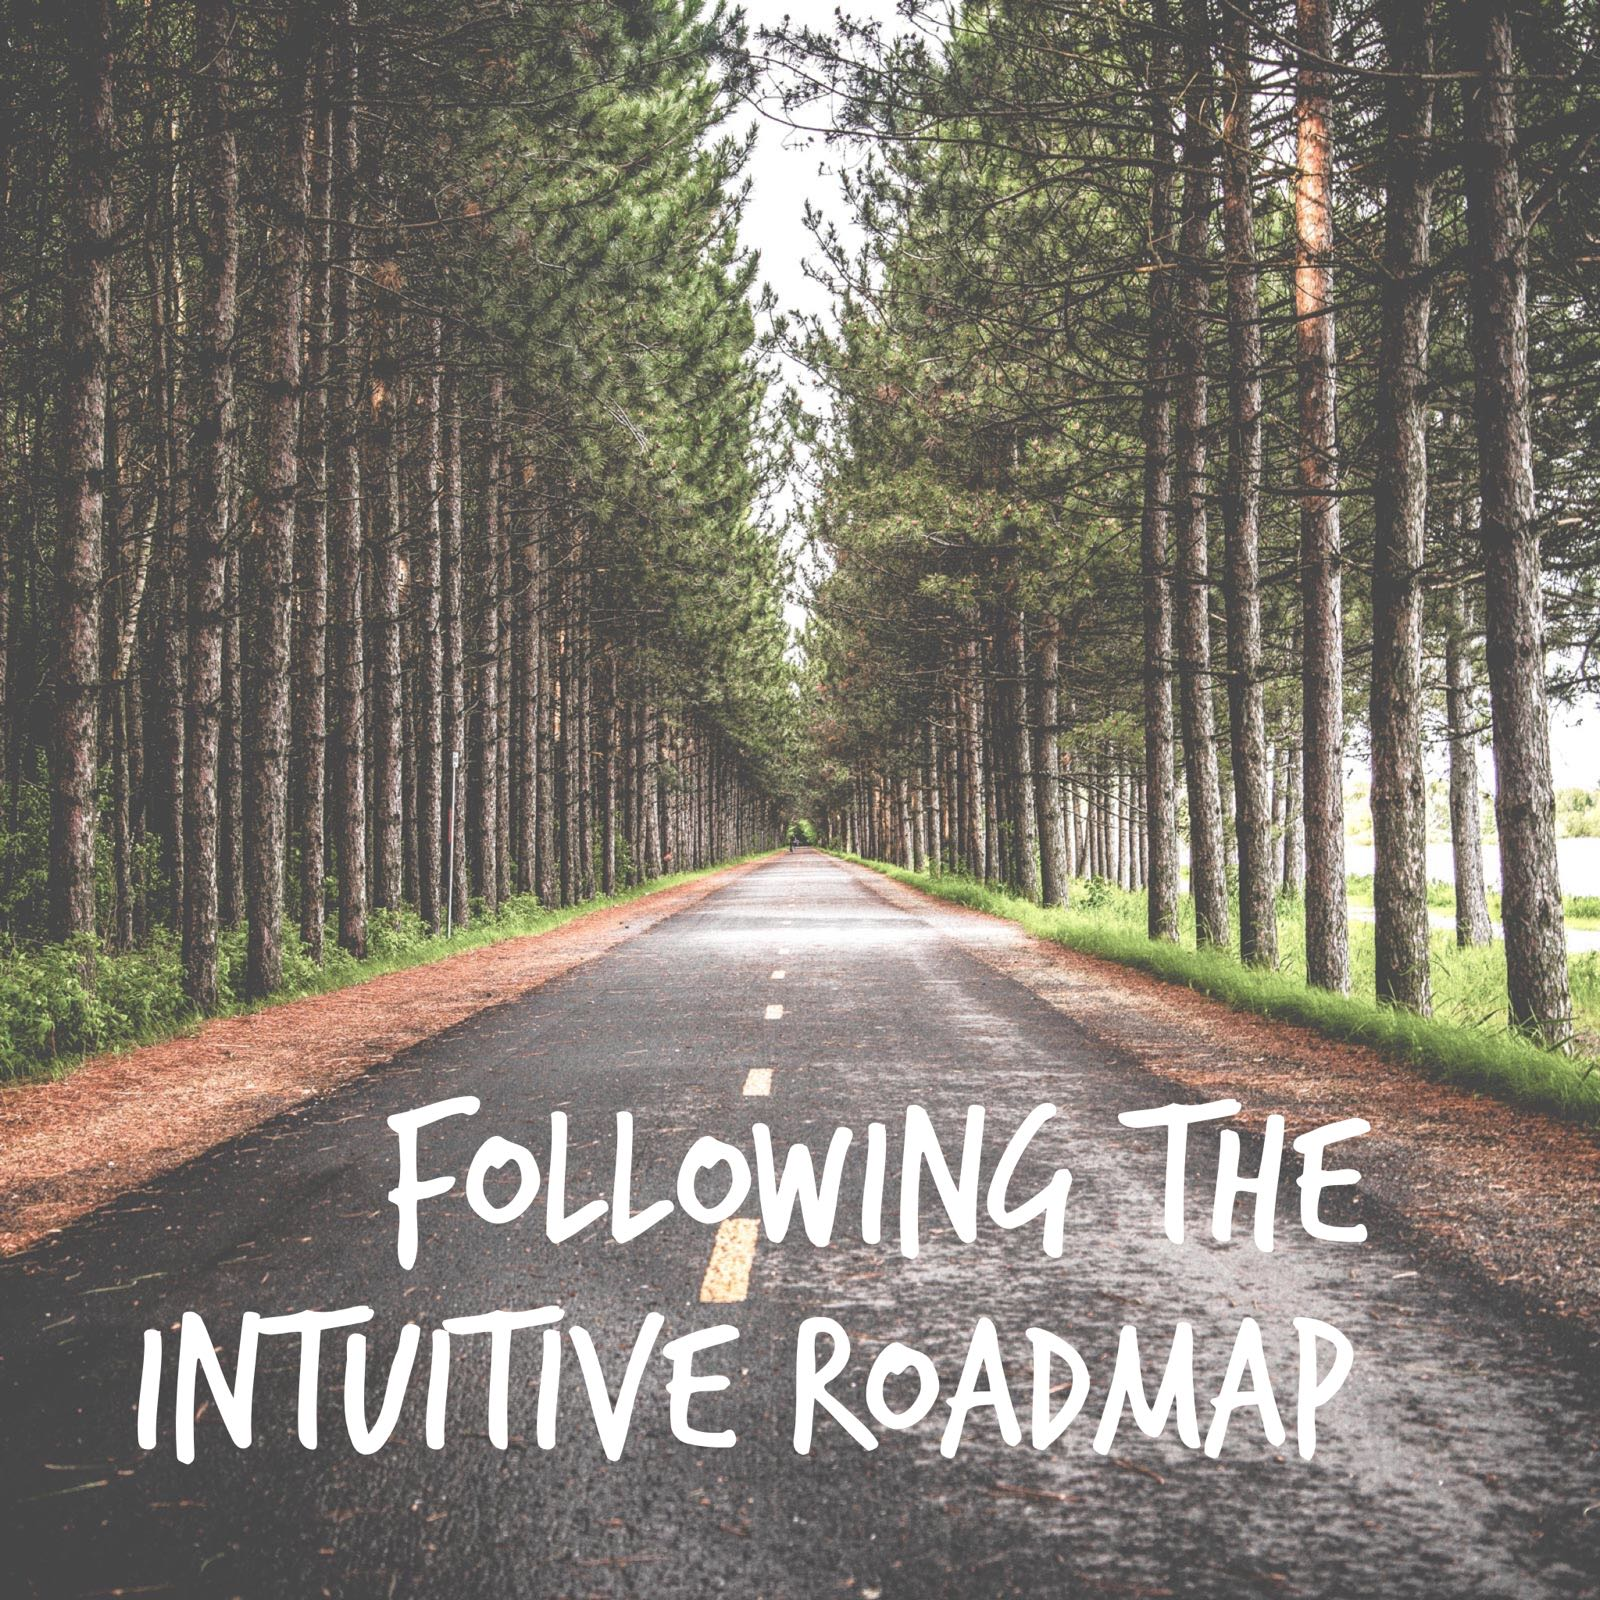 "Ever have that feeling of being in the right place at the right time? An unexpected opportunity come ""out of the blue""? Experience a synchronicity that you just can't explain? Welcome to the  Intuitive Roadmap . This undercurrent is always guiding you. Learn how to follow it."